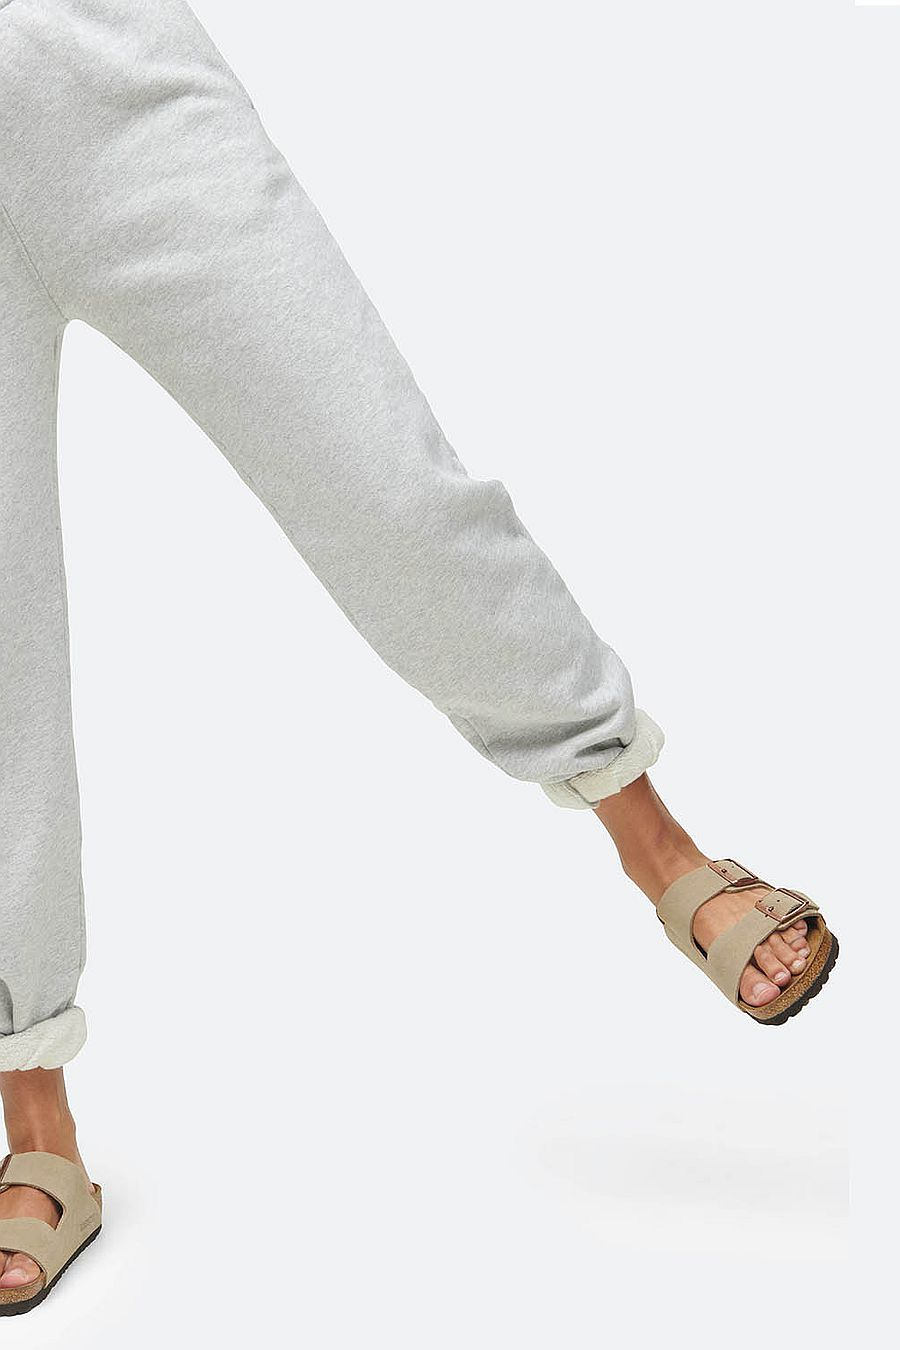 MATE The Label Fleece Relaxed Pocket Sweatpant - HEATHER GREY